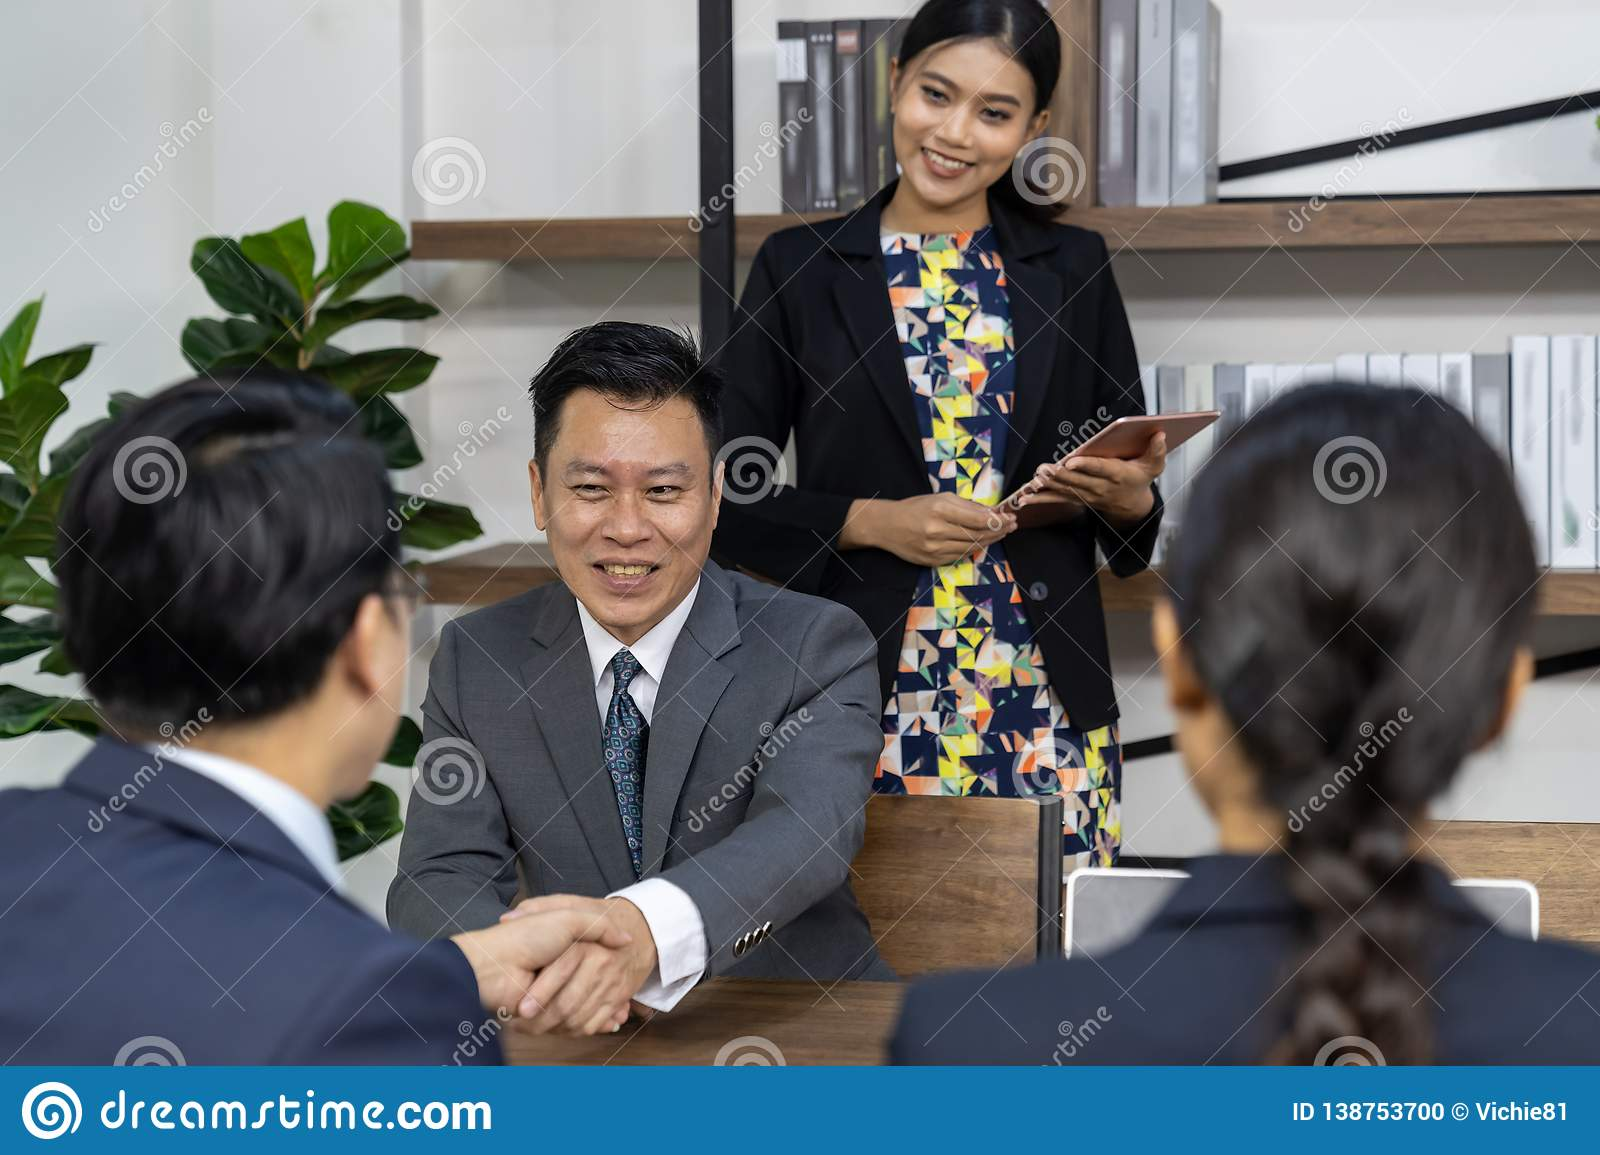 Business deal in a cafe